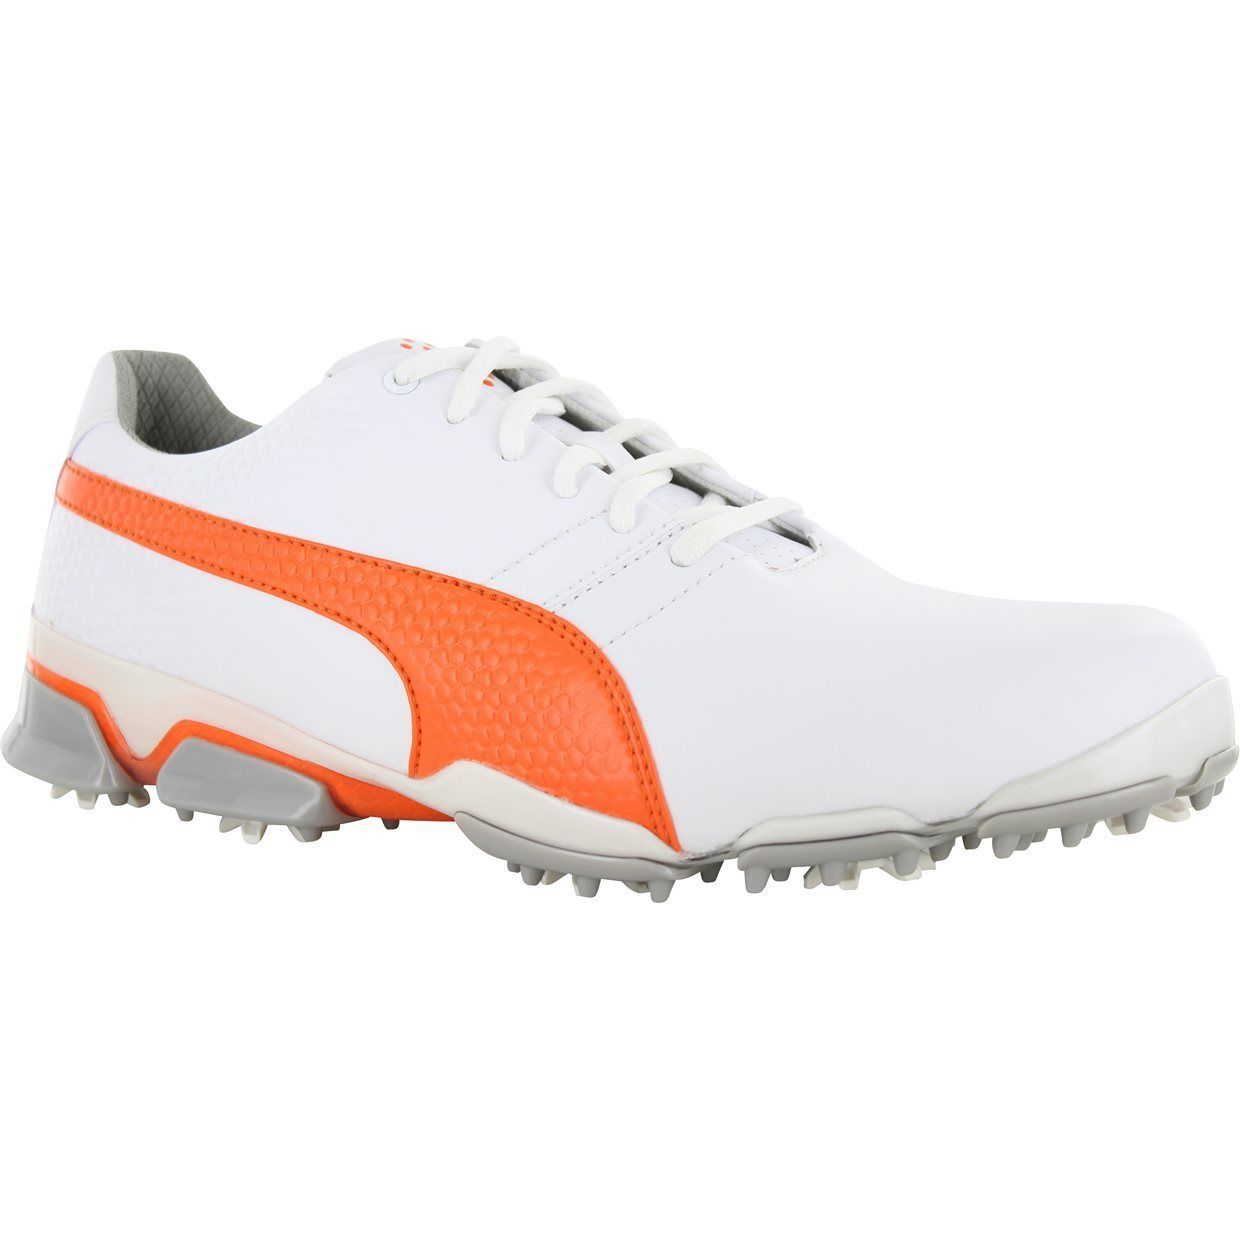 MENS PUMA TITANTOUR IGNITE GOLF SHOES 188656-01 WHITE/VIBRANT ORANGE/DRIZZLE